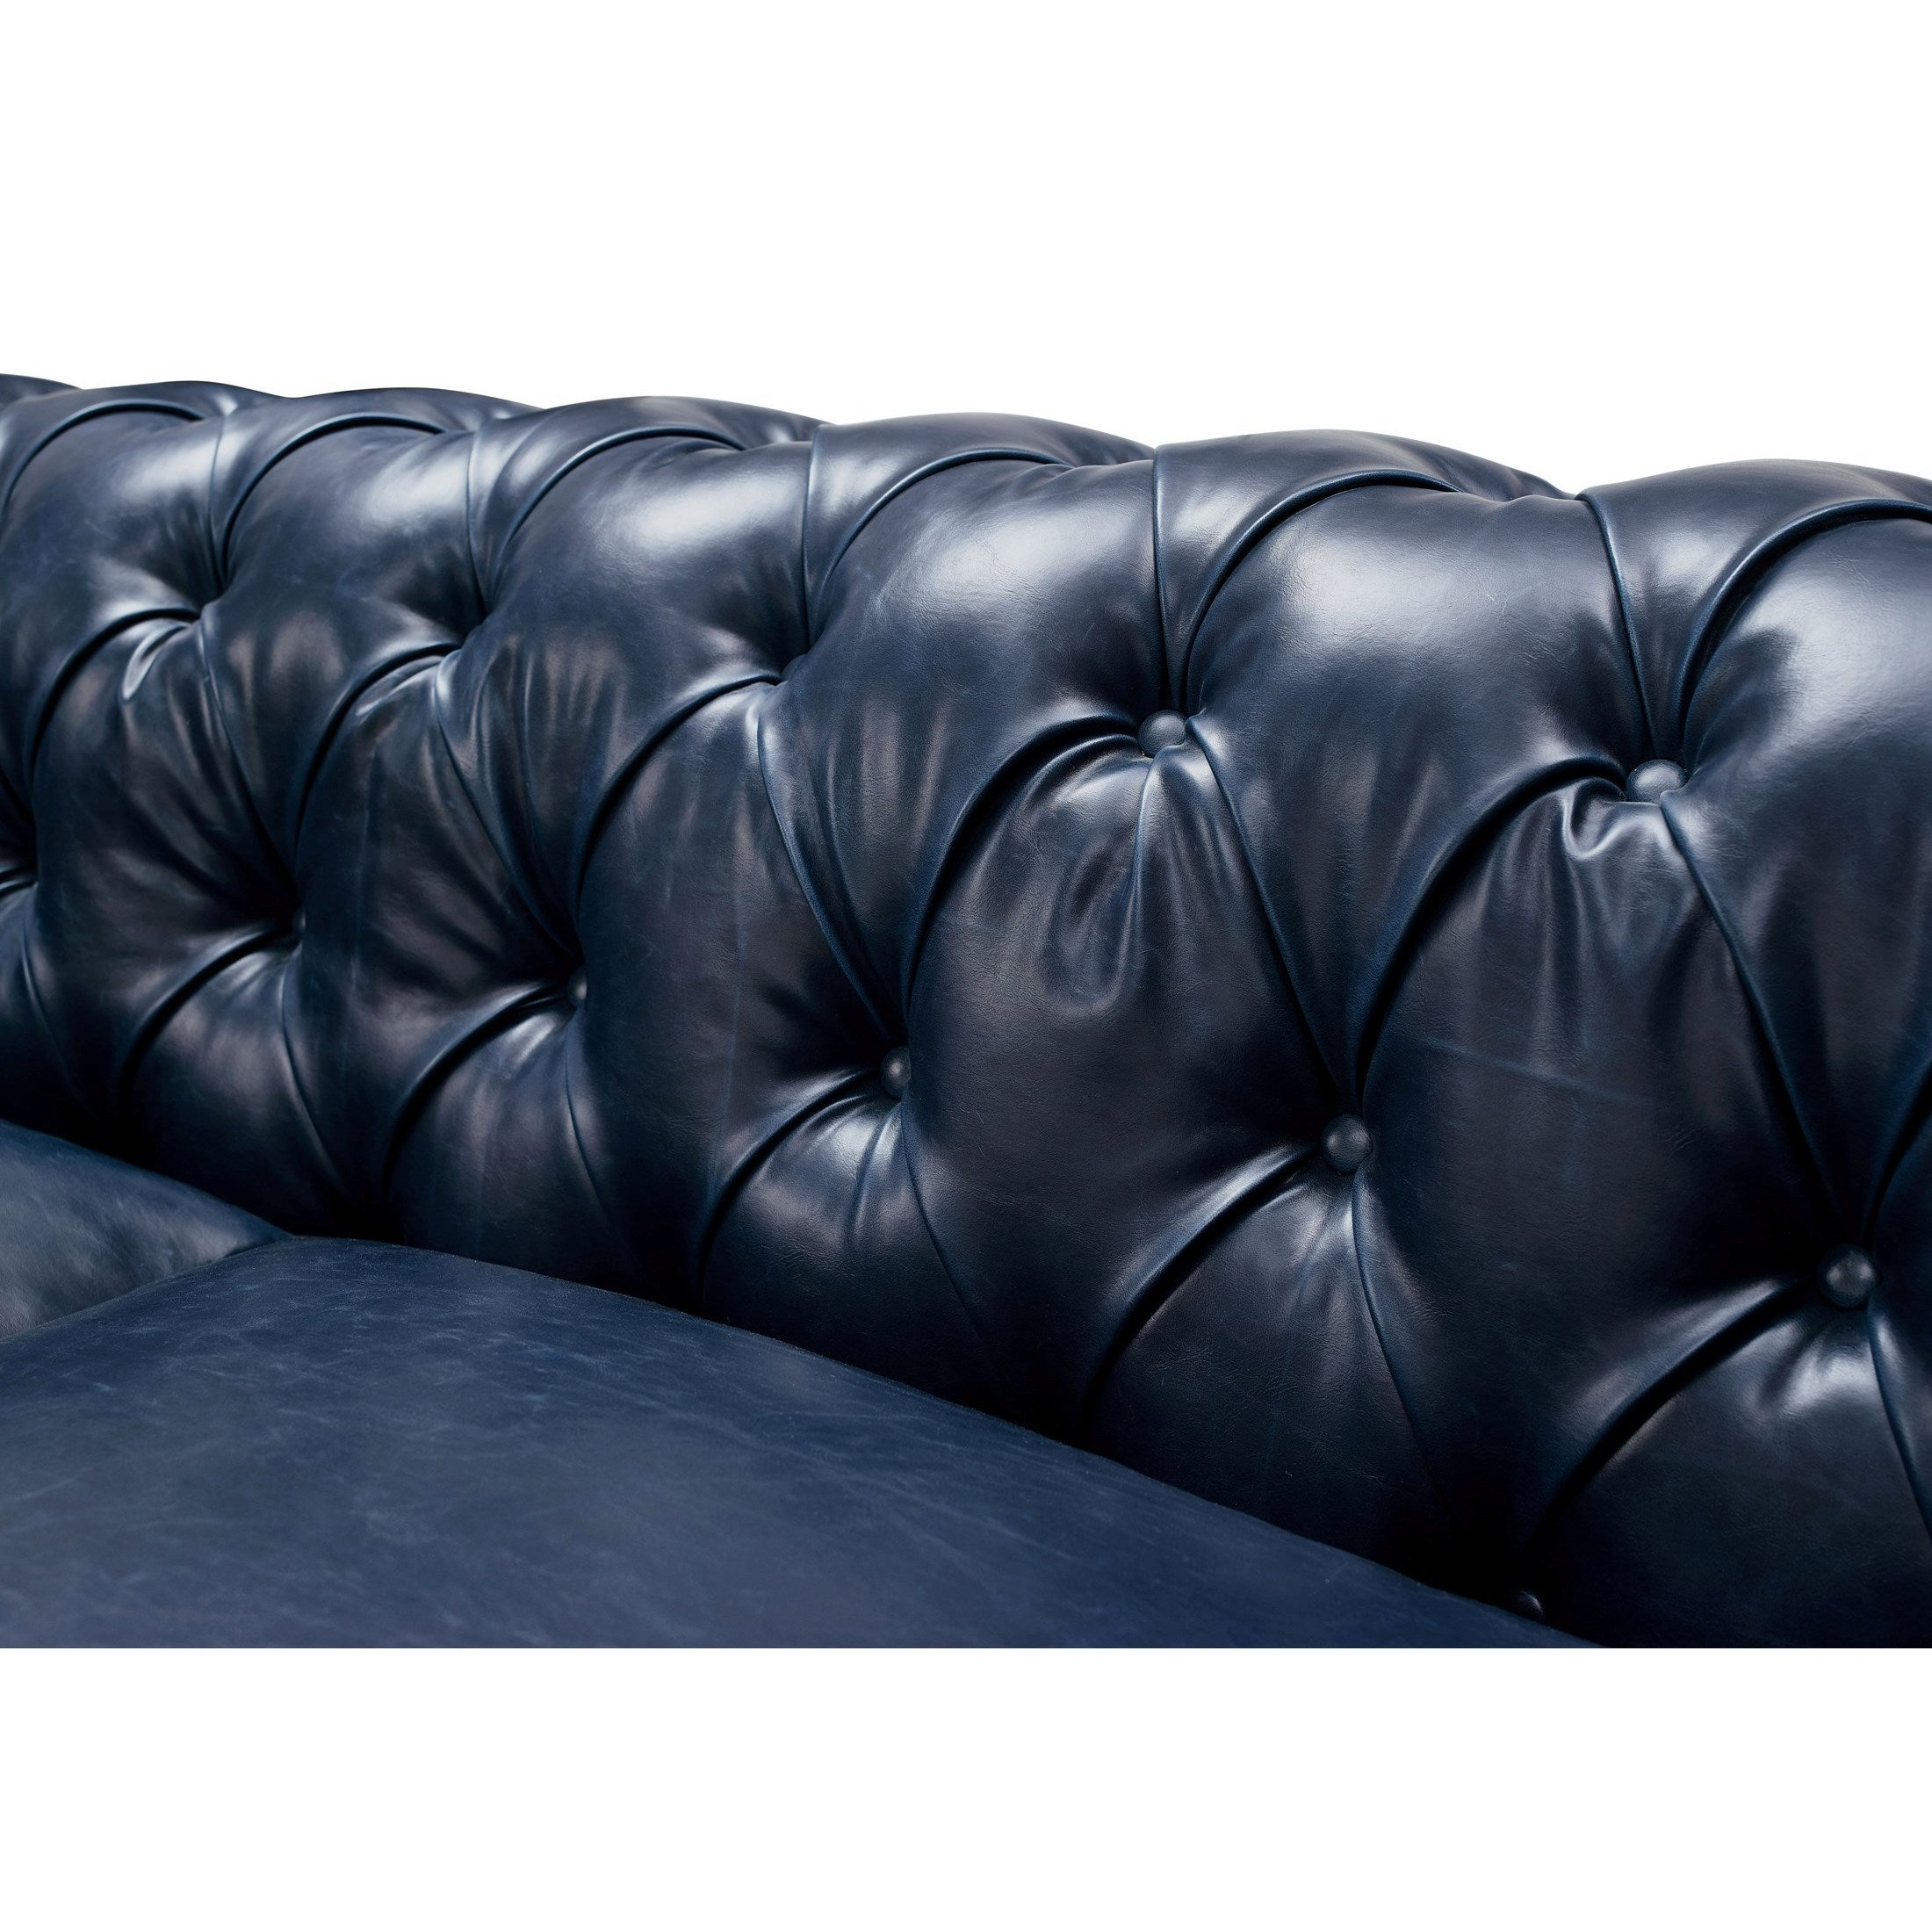 sale for design real sofas couch blue cleaner sofa size and couches curved of full leather mauve covers sectional